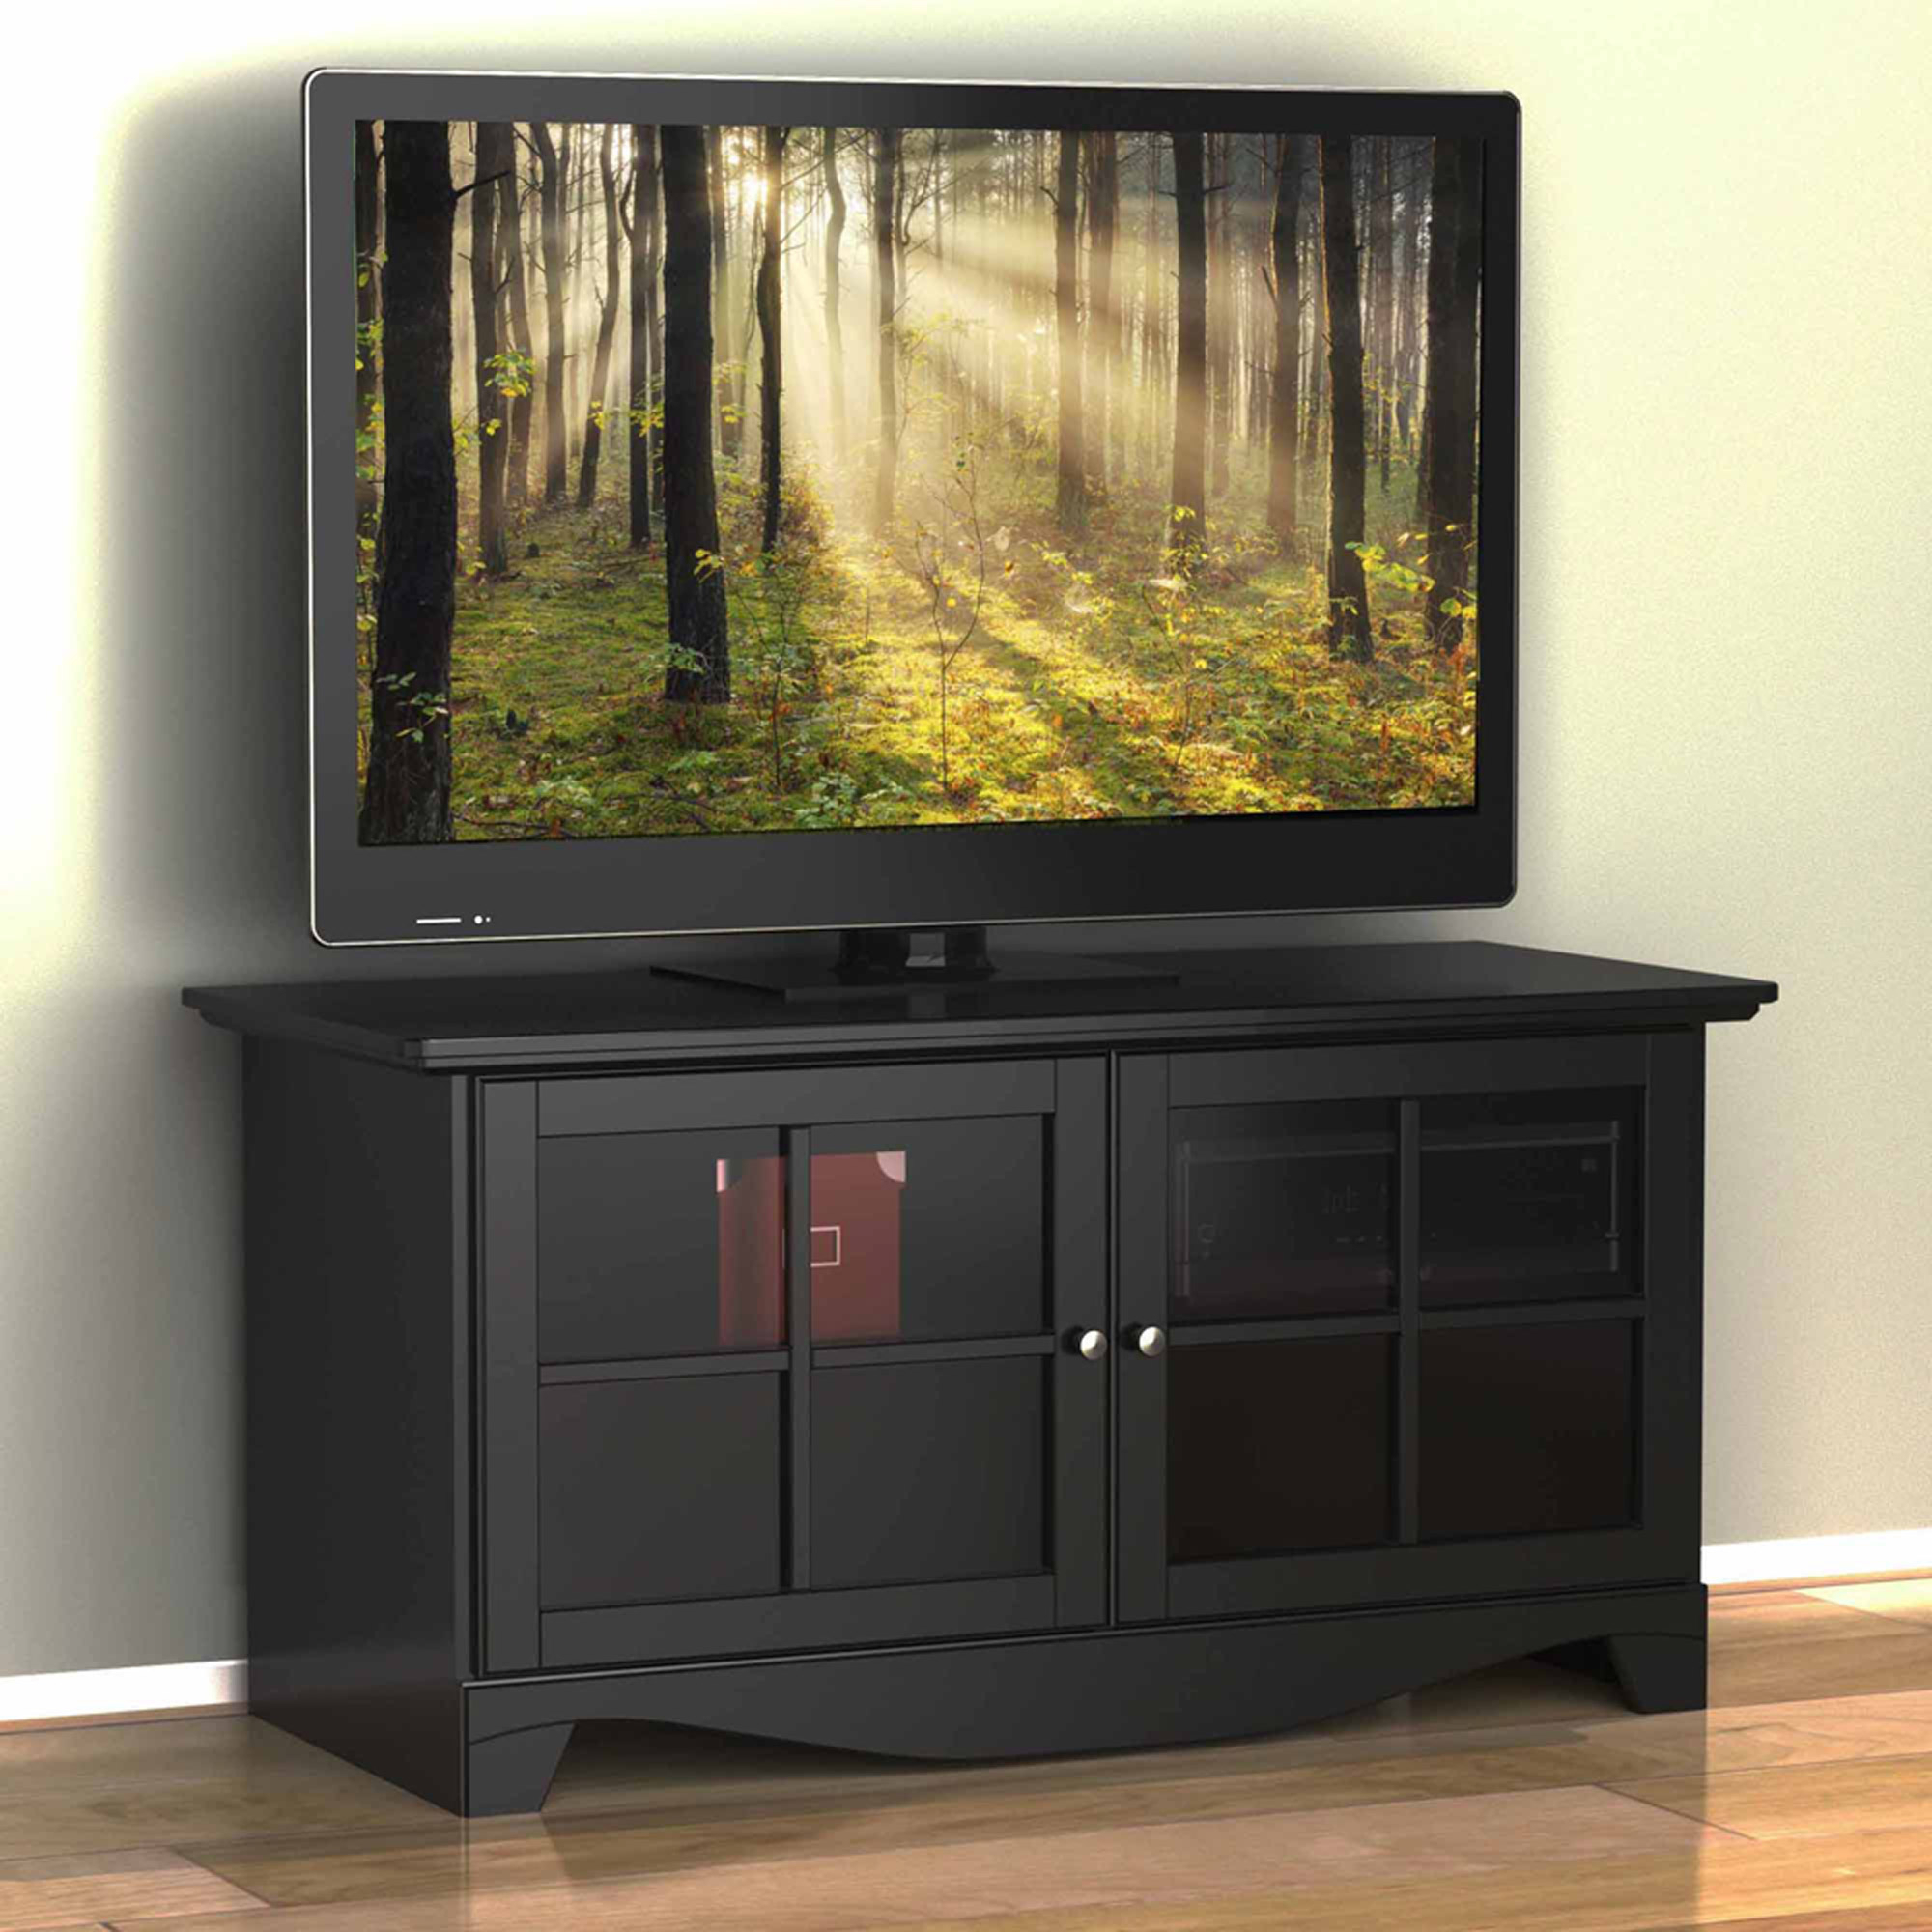 "Nexera Tv Stands With Well Known Pinnacle Tv Stand, For Tvs Up To 52"" – Walmart (View 16 of 20)"